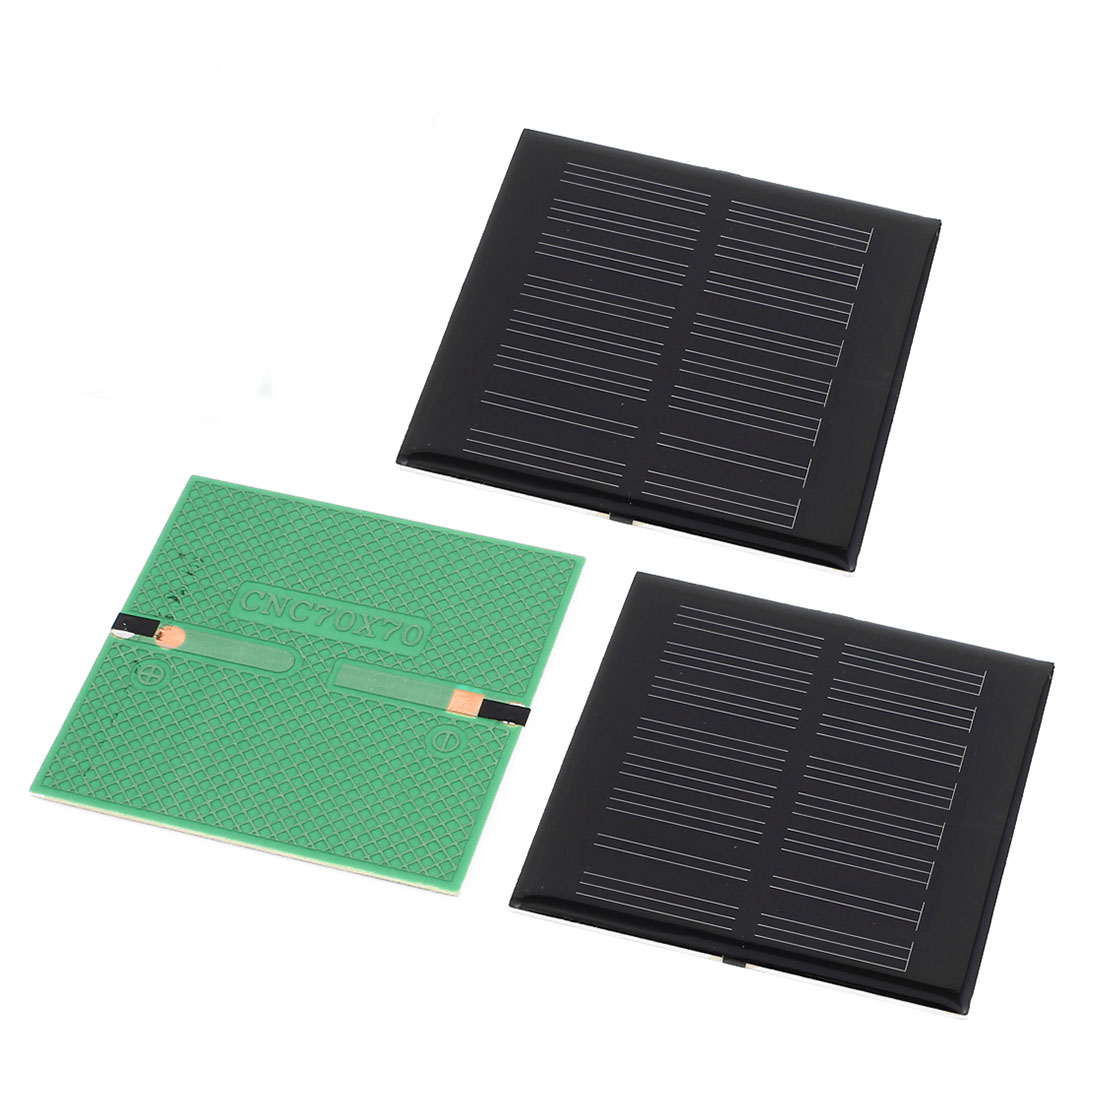 3 Pcs 4V 0.36W DIY Polycrystallinesilicon Solar Panel Power Cell Battery Charger 70mm x 70mm